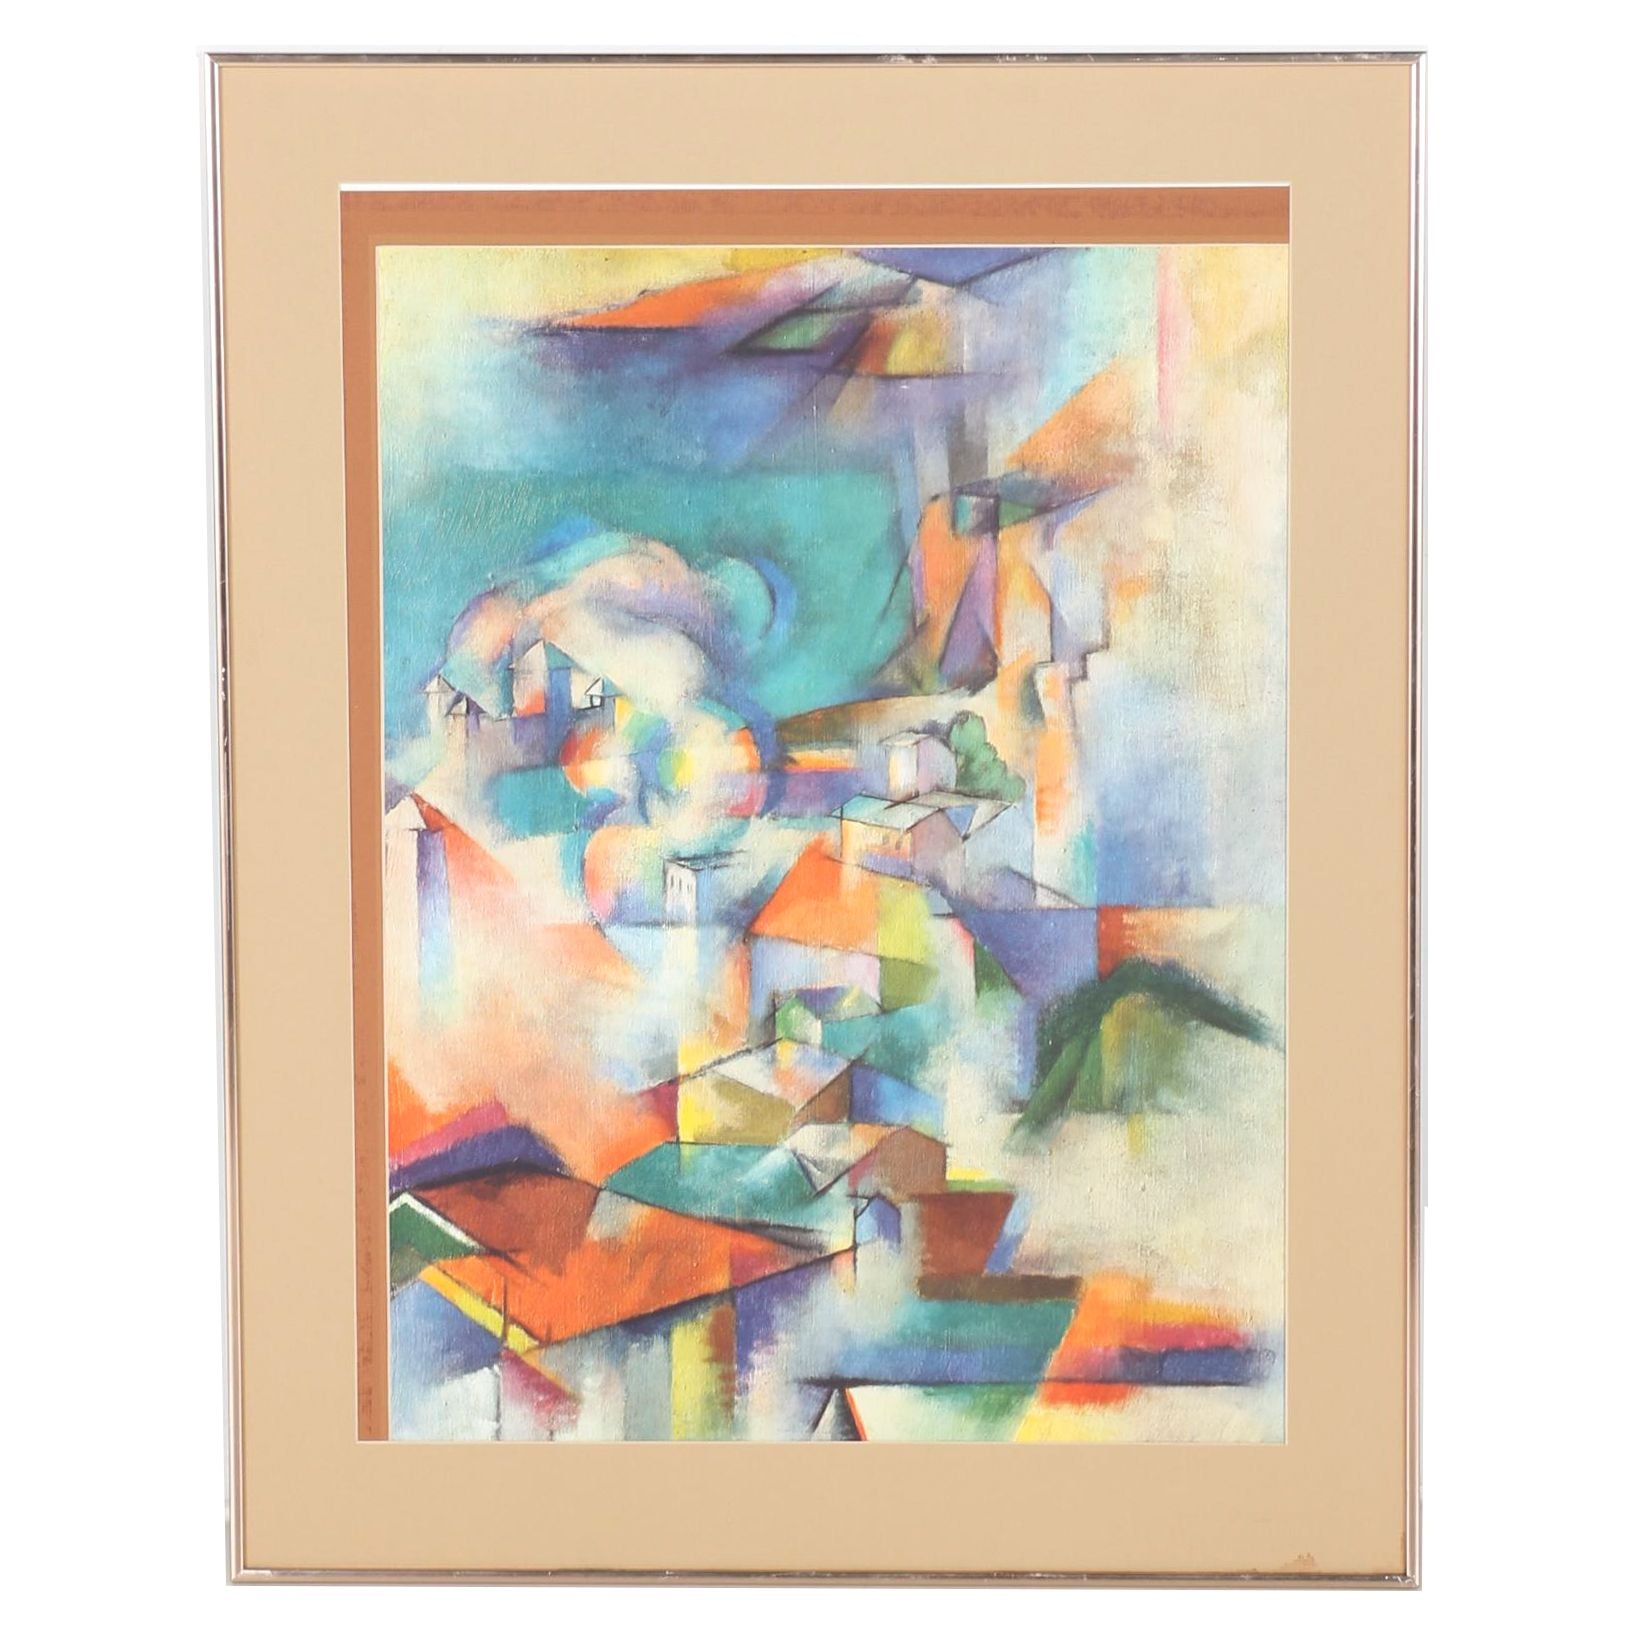 Giclee Print of Abstract Village After Stanton Macdonald-Wright